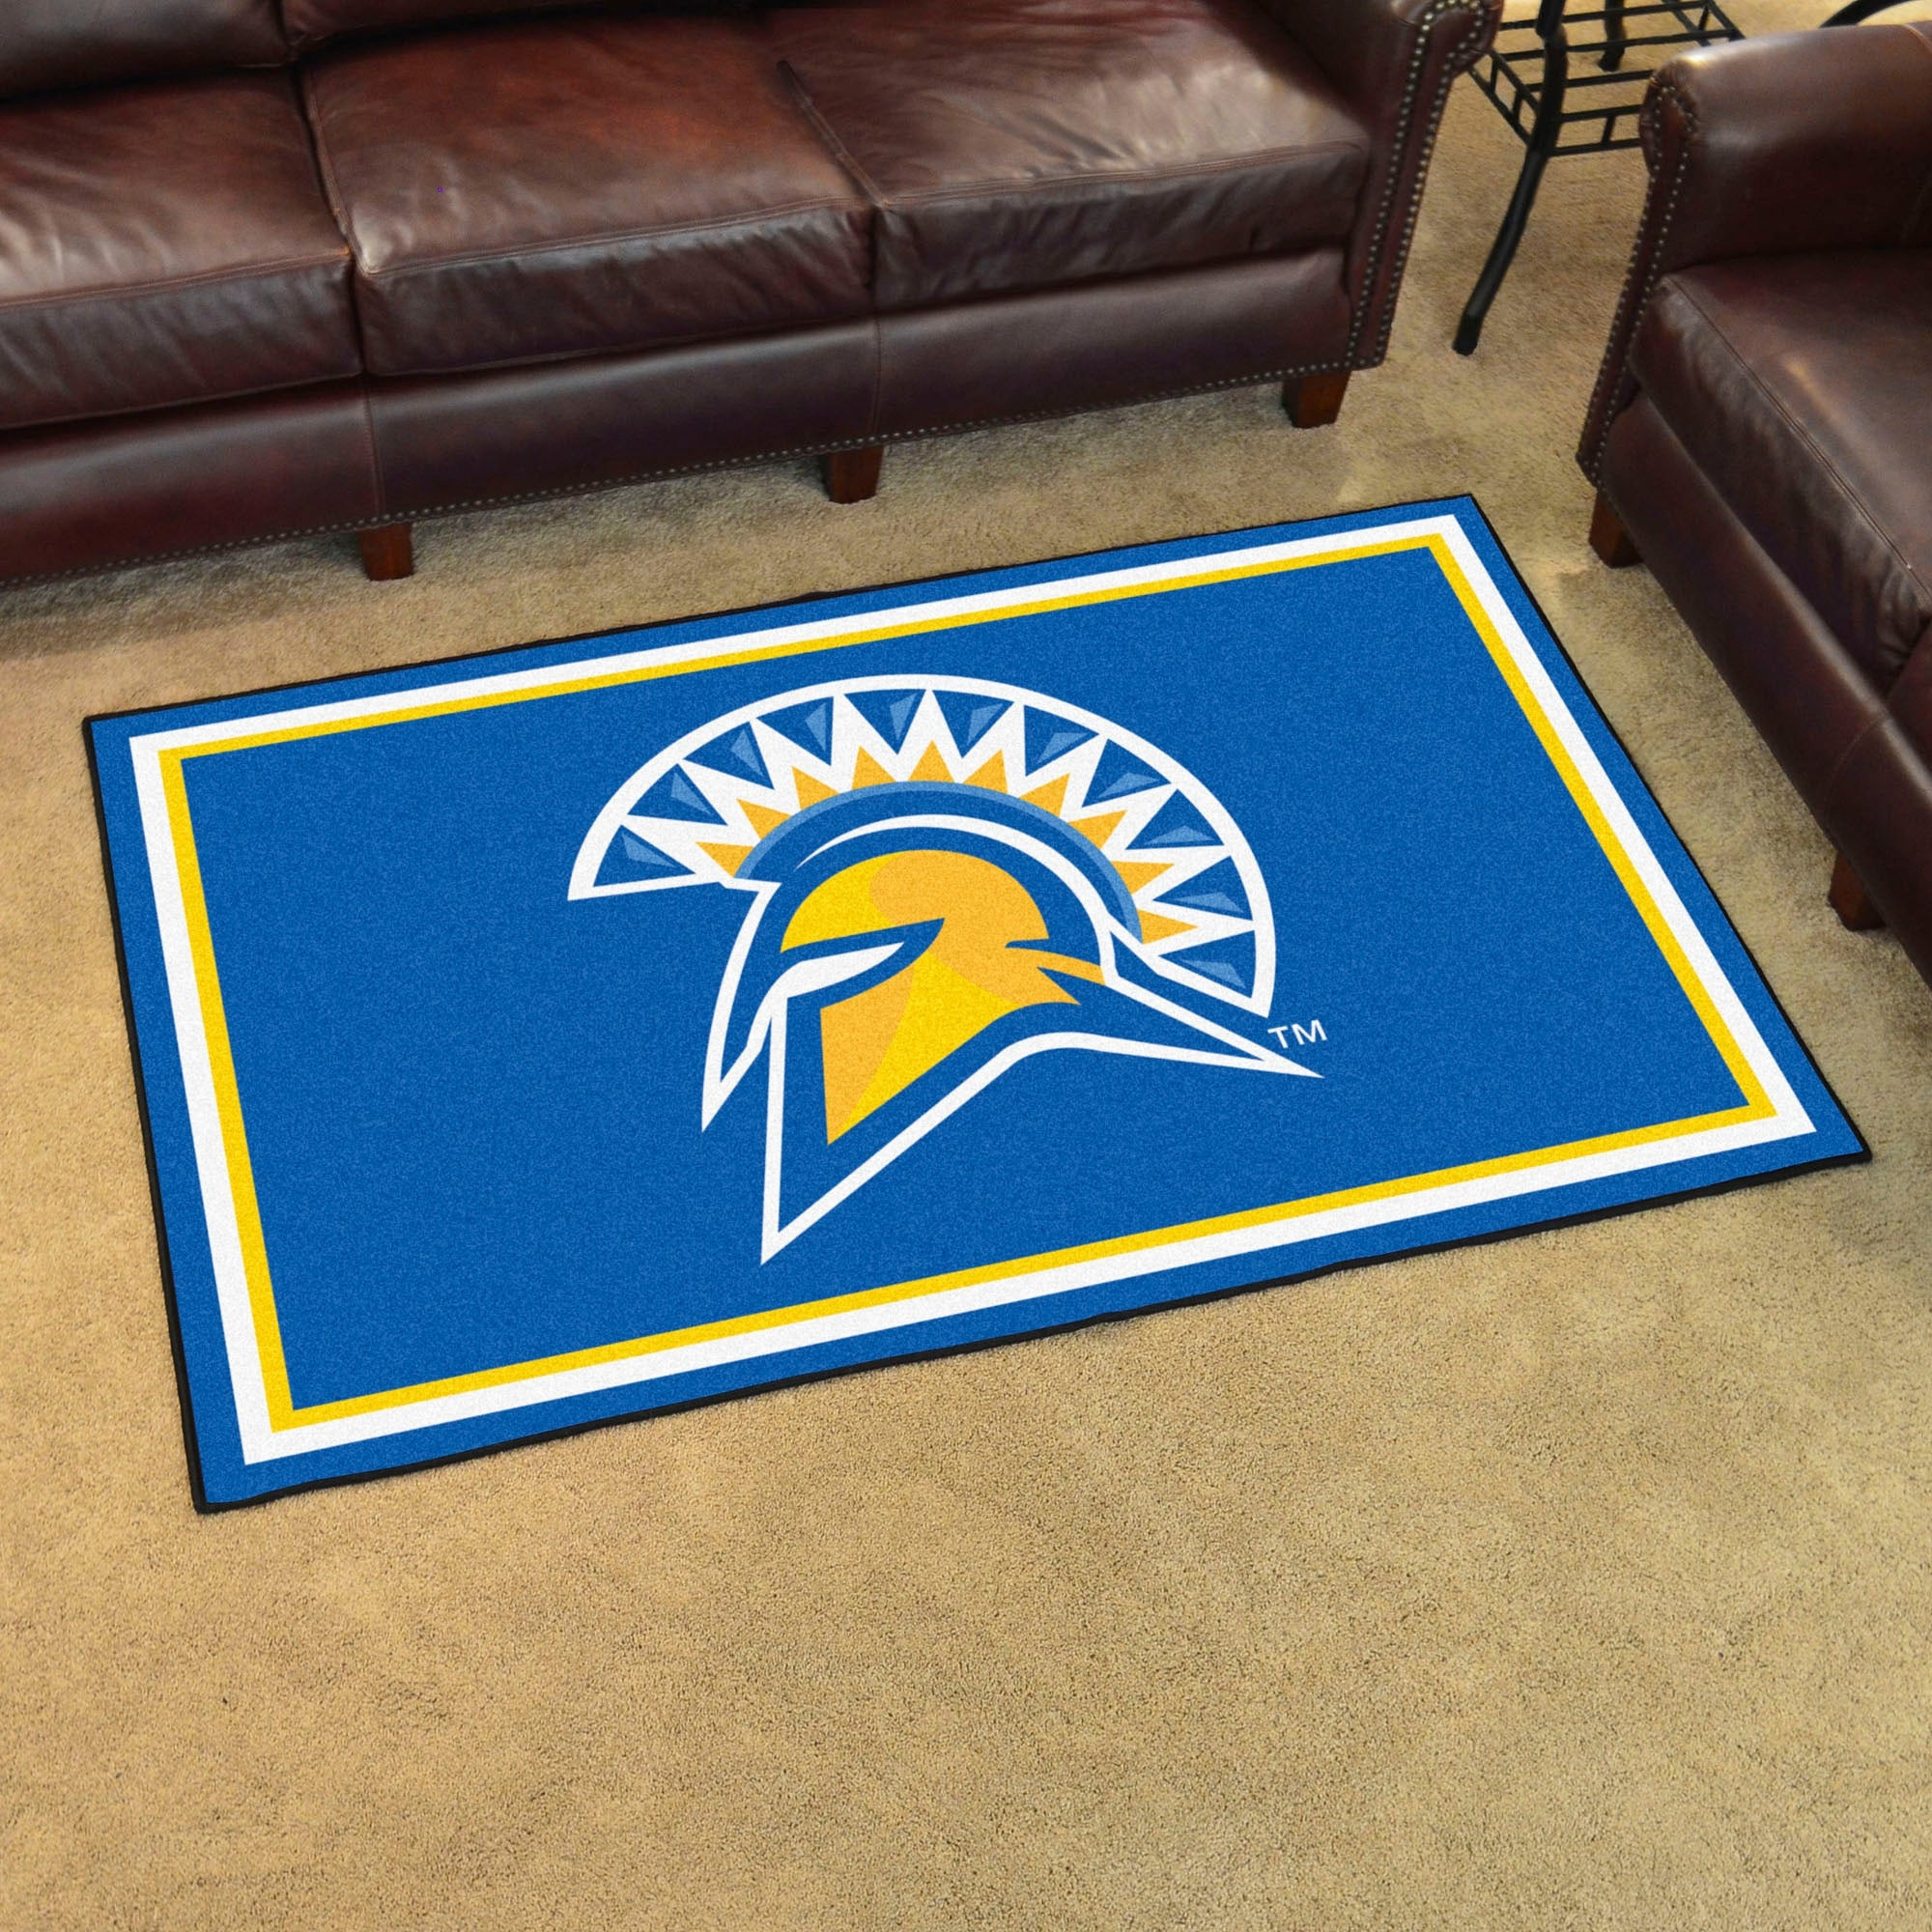 Shop NCAA San Jose State University Spartans 4 x 6 Foot Plush Non-Skid Area Rug - Free Shipping Today - Overstock - 22623113